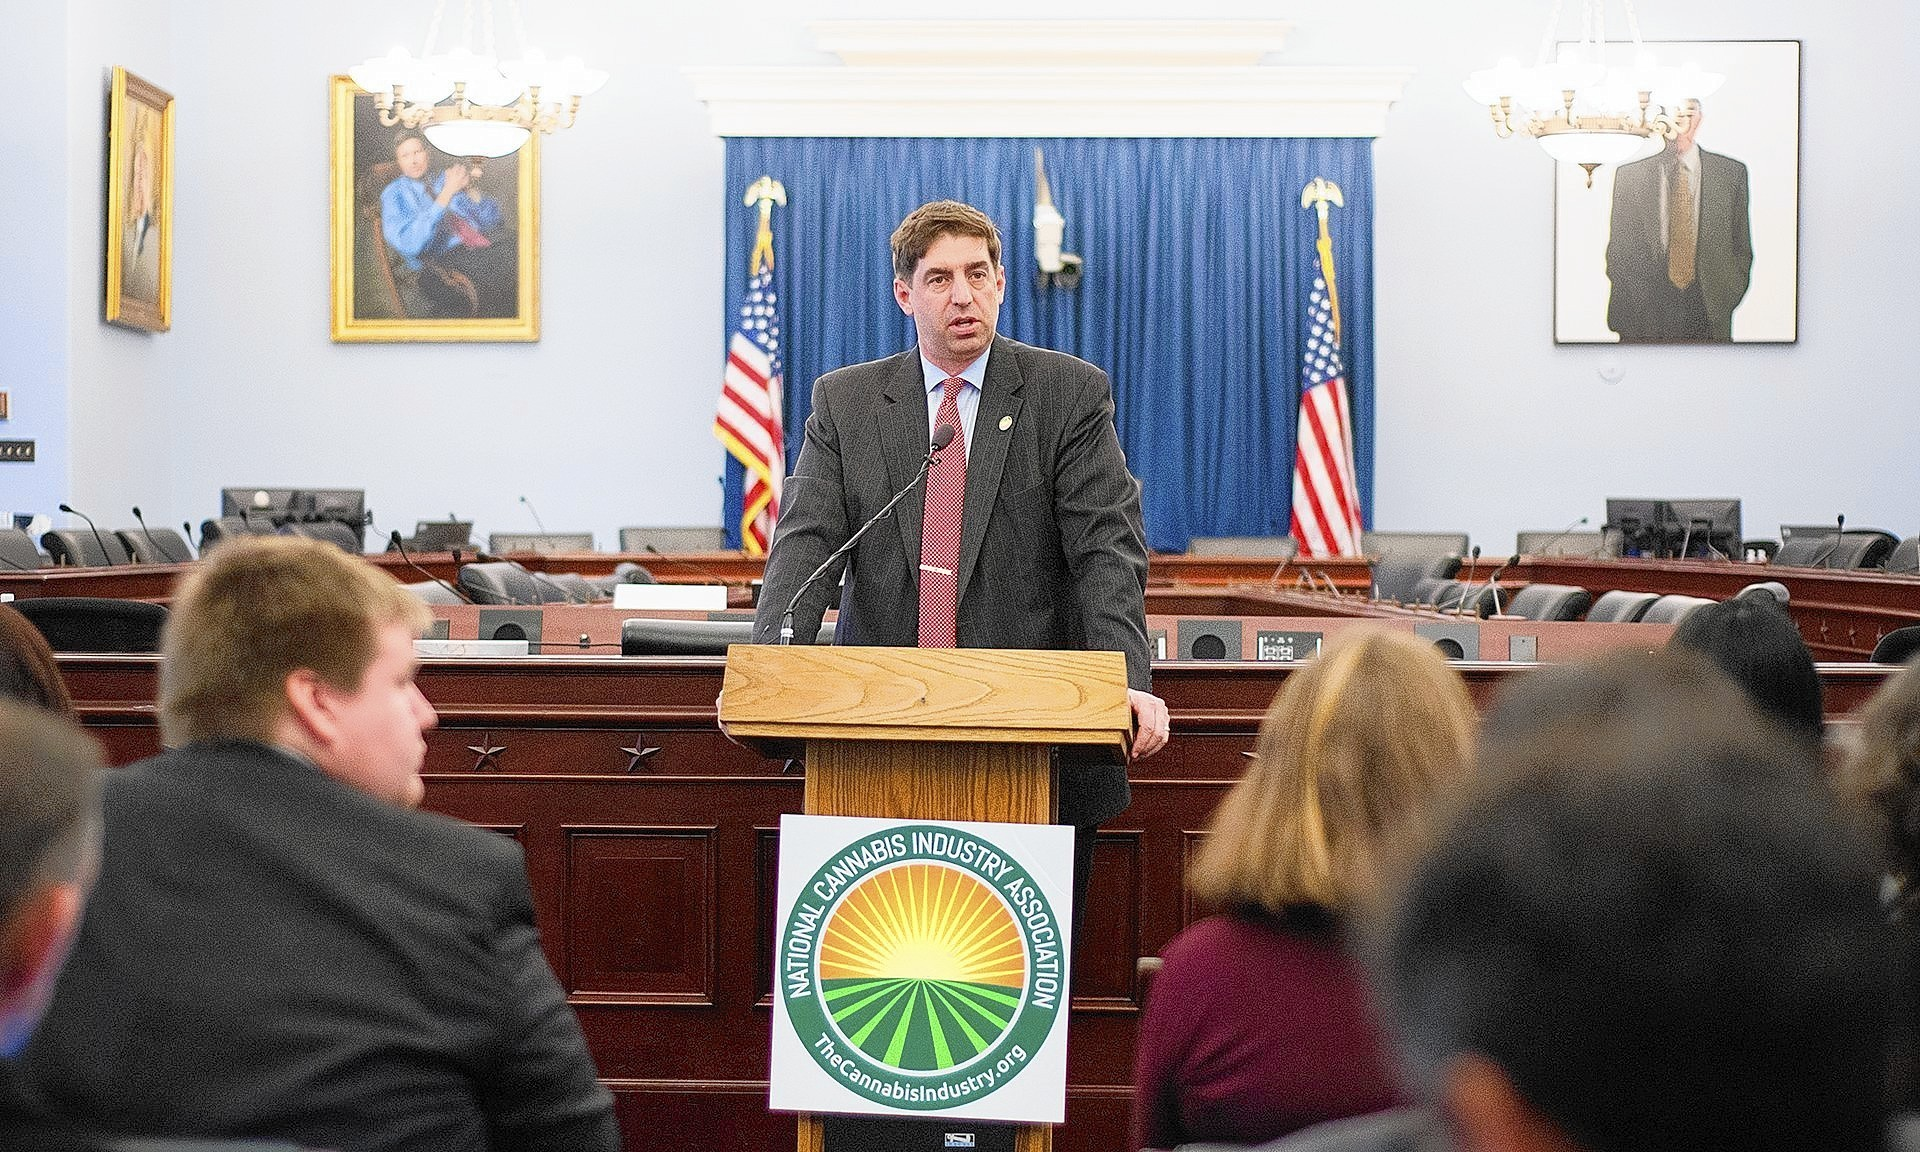 Michael Correia, a former GOP staffer who spent two years lobbying for the conservative American Legislative Exchange Council, is the newest advocate for the National Cannabis Industry Assn.